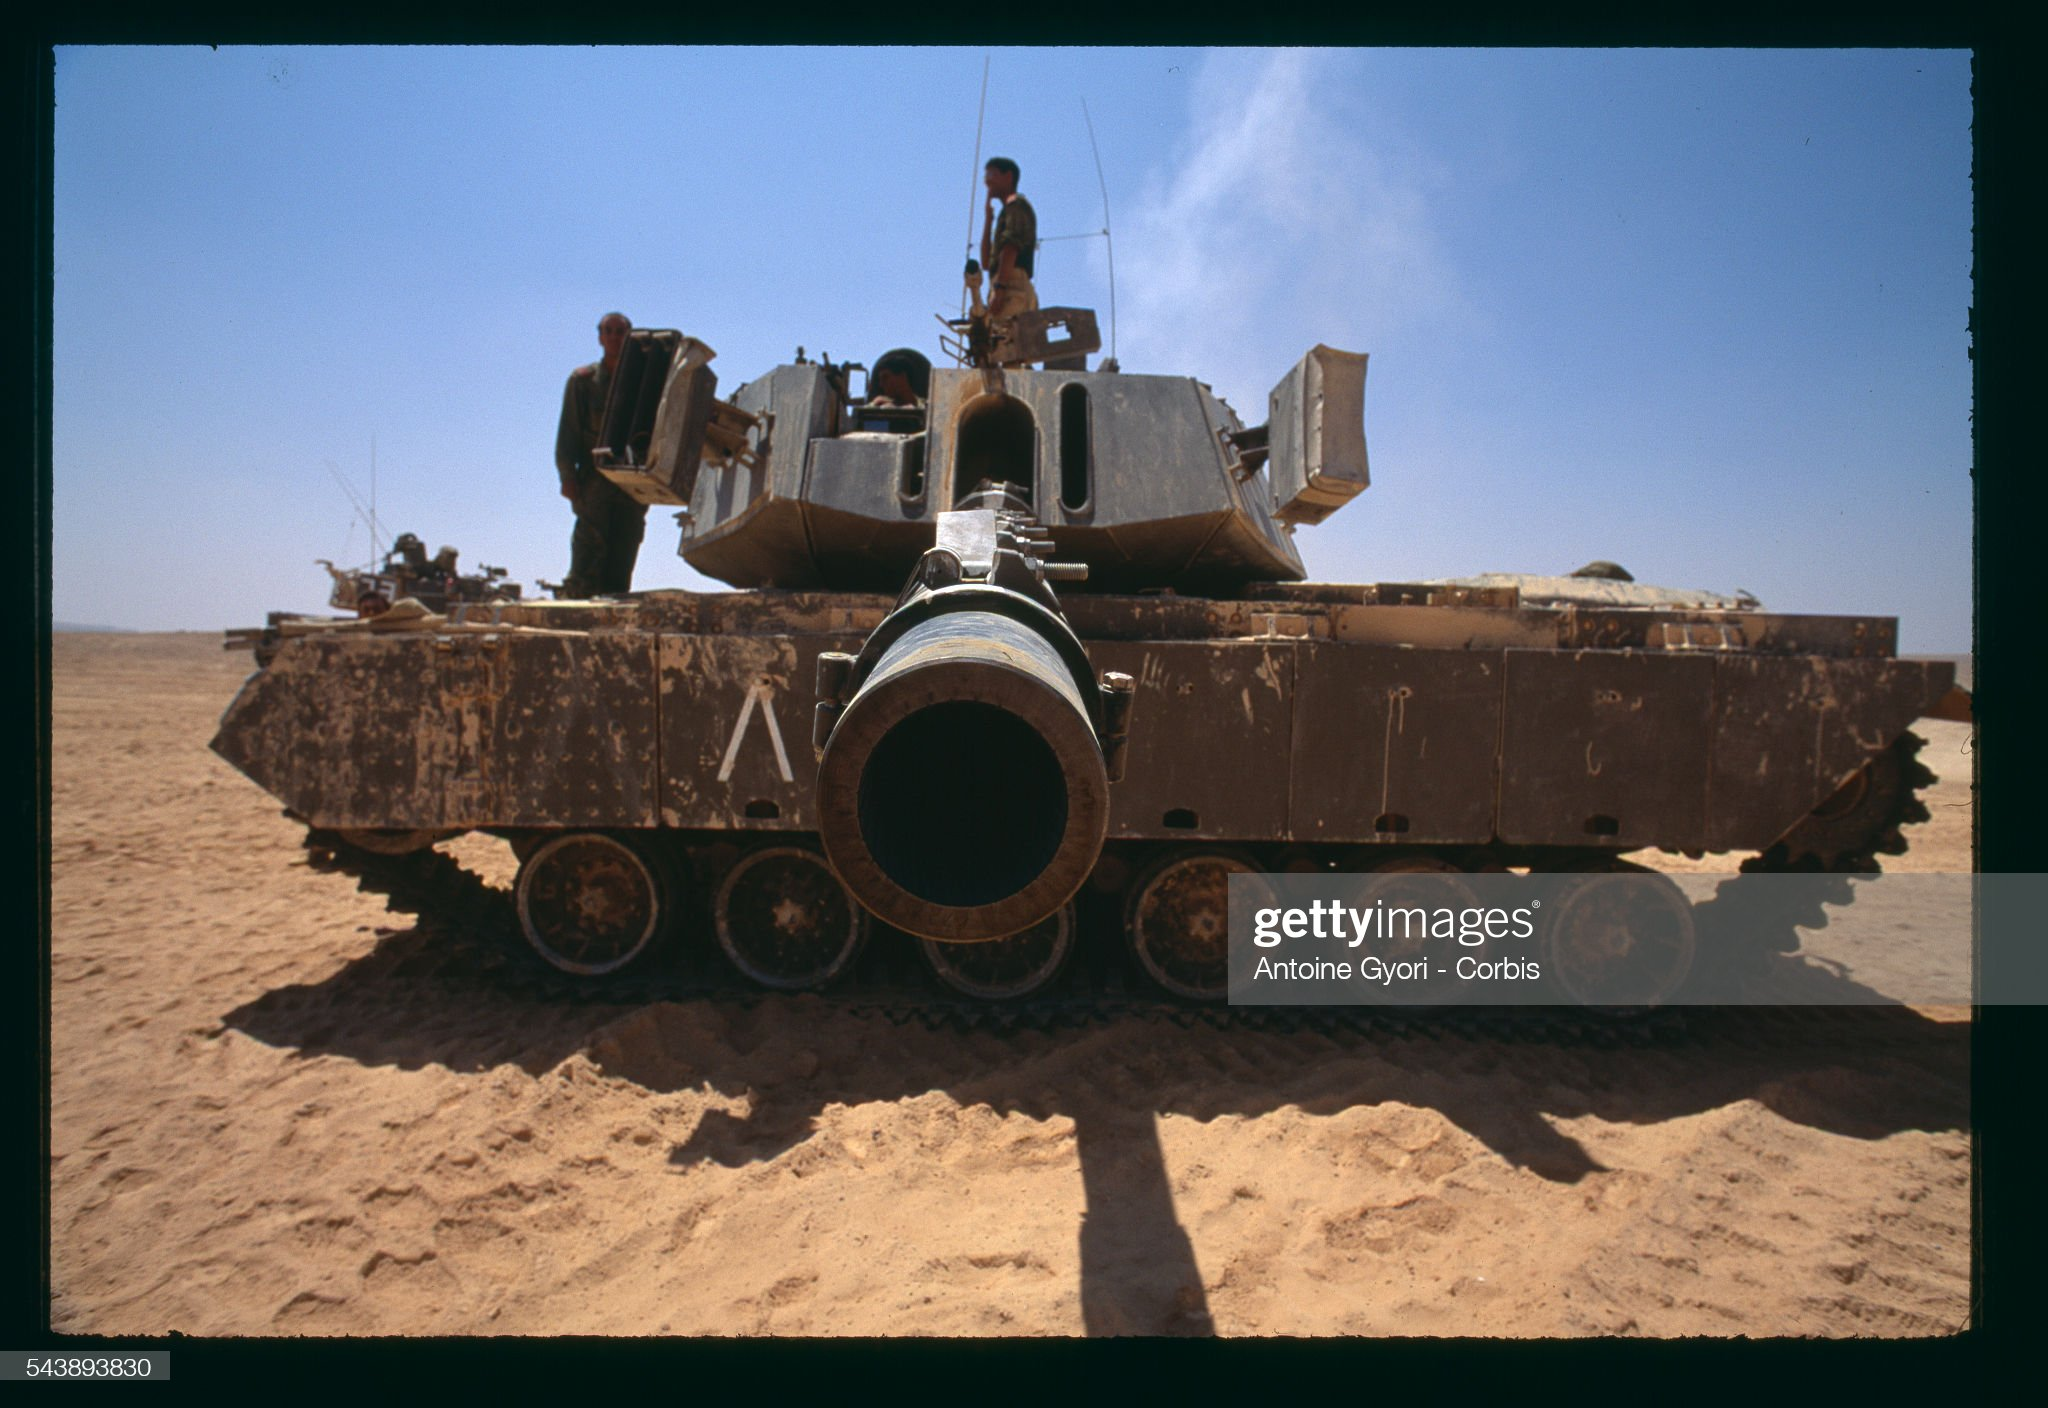 https://media.gettyimages.com/photos/israel-tank-trials-in-the-negev-desert-location-israel-southern-picture-id543893830?s=2048x2048